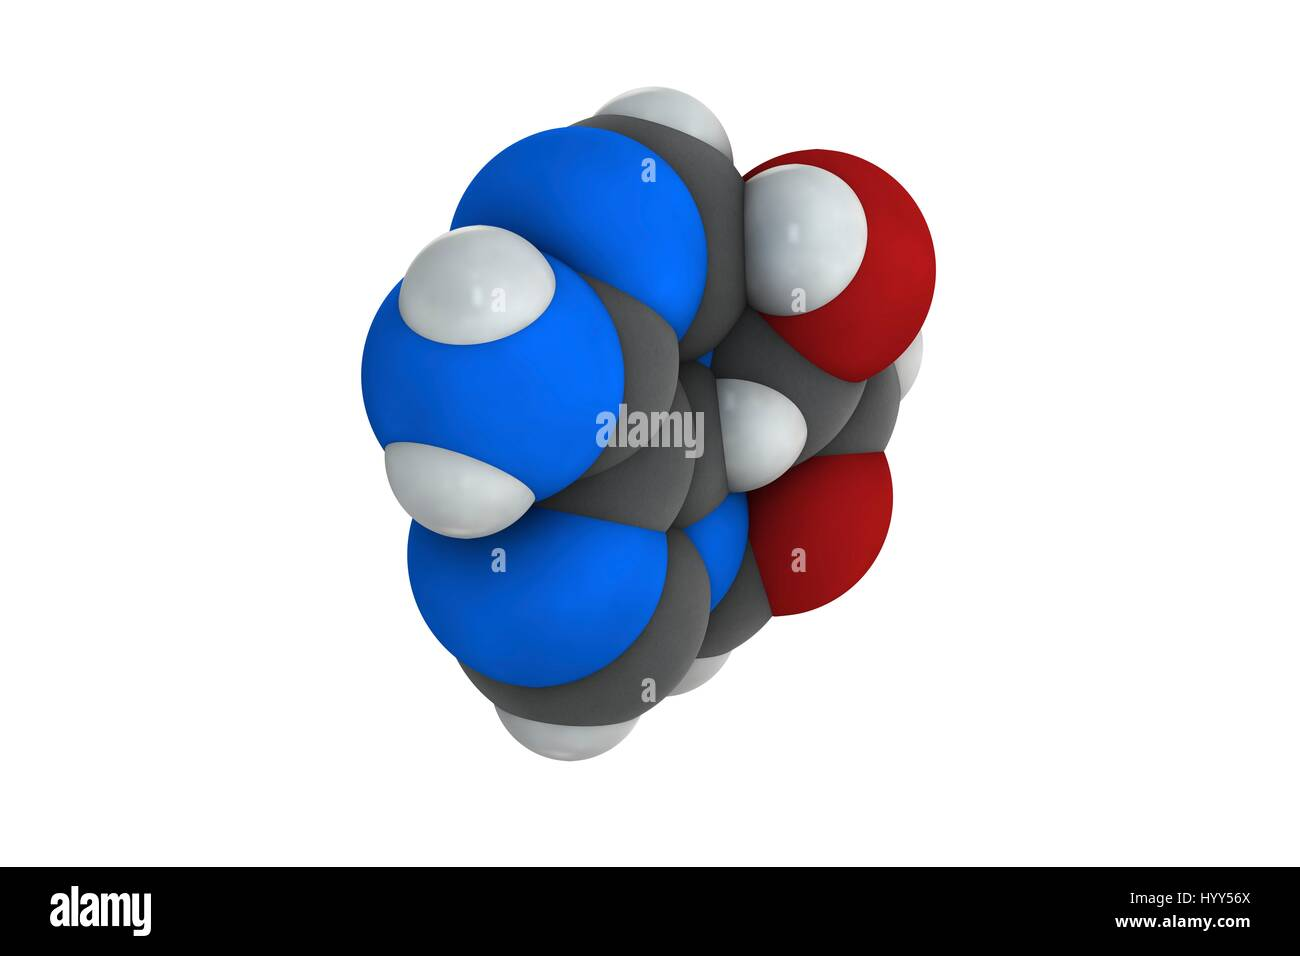 Adenosine (Ado) purine nucleoside molecule. Important component of ATP, ADP, cAMP and RNA. Also used as drug. Chemical Stock Photo